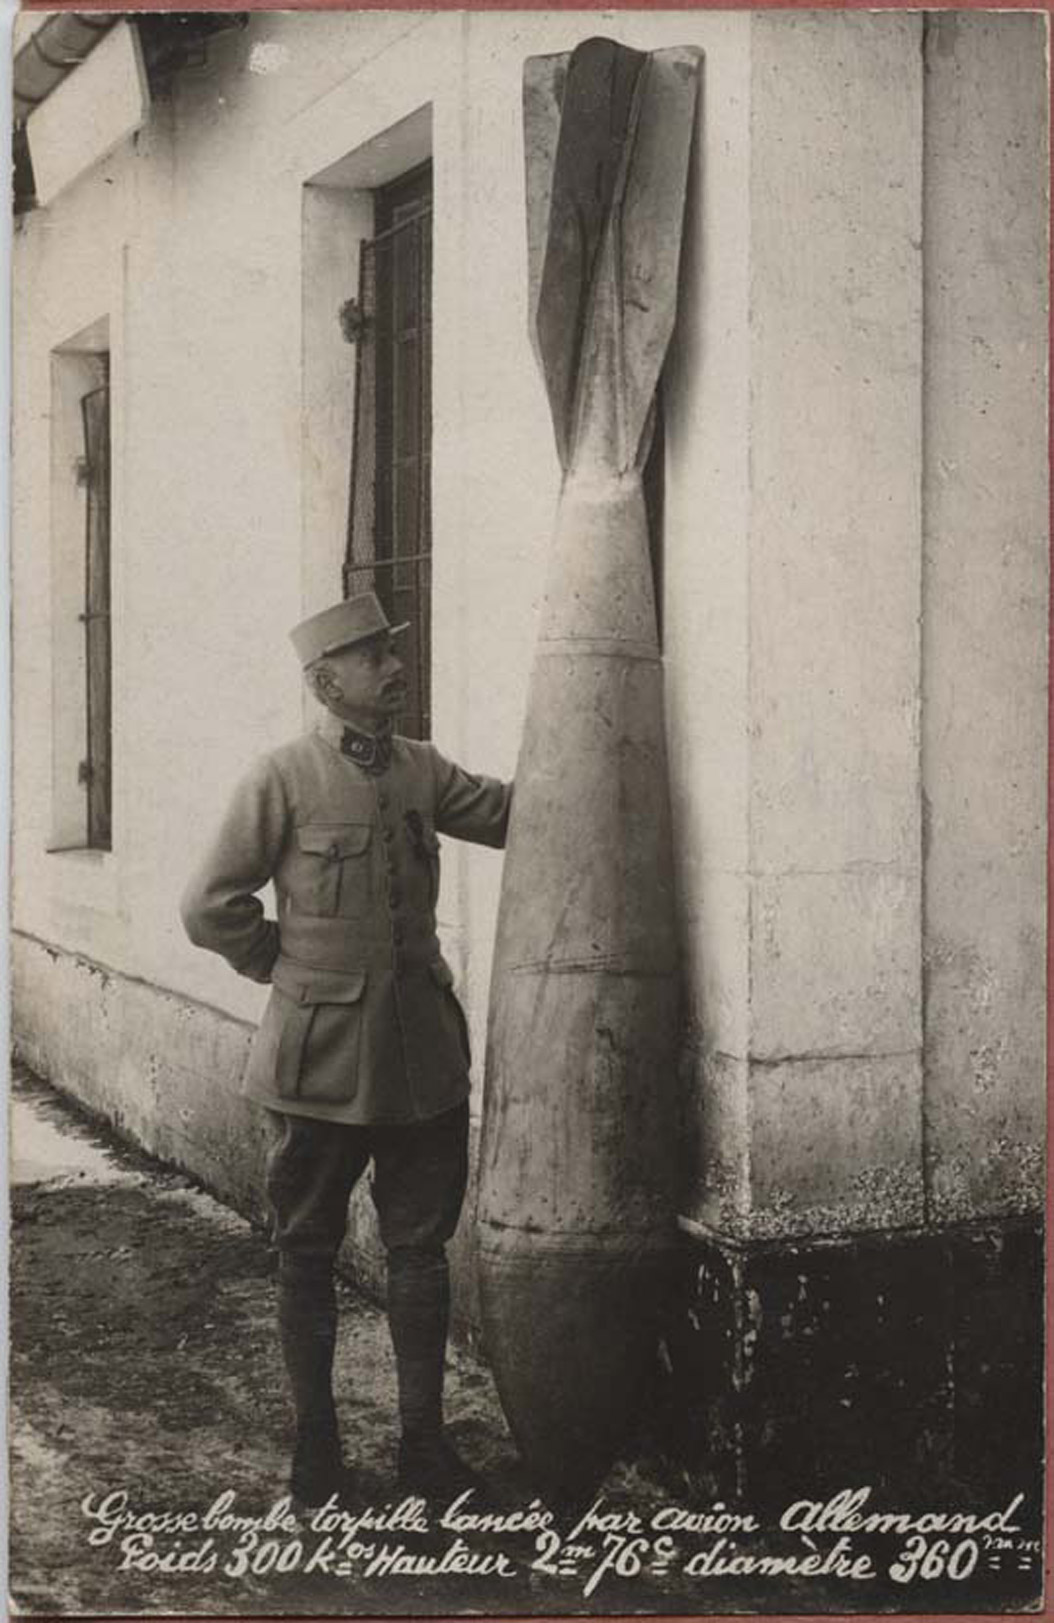 <span class='figure-reader-id'>Image 11:</span> 11086-27-03.  The bombs that fell on Nancy came in all kinds of shapes. In this photo, a soldier stands with this very large bomb. The fact that so many bombs did not explode helped to prevent much damage to the town. <span class='figure-archive-id'>SHSND 11086-27-03.</span>